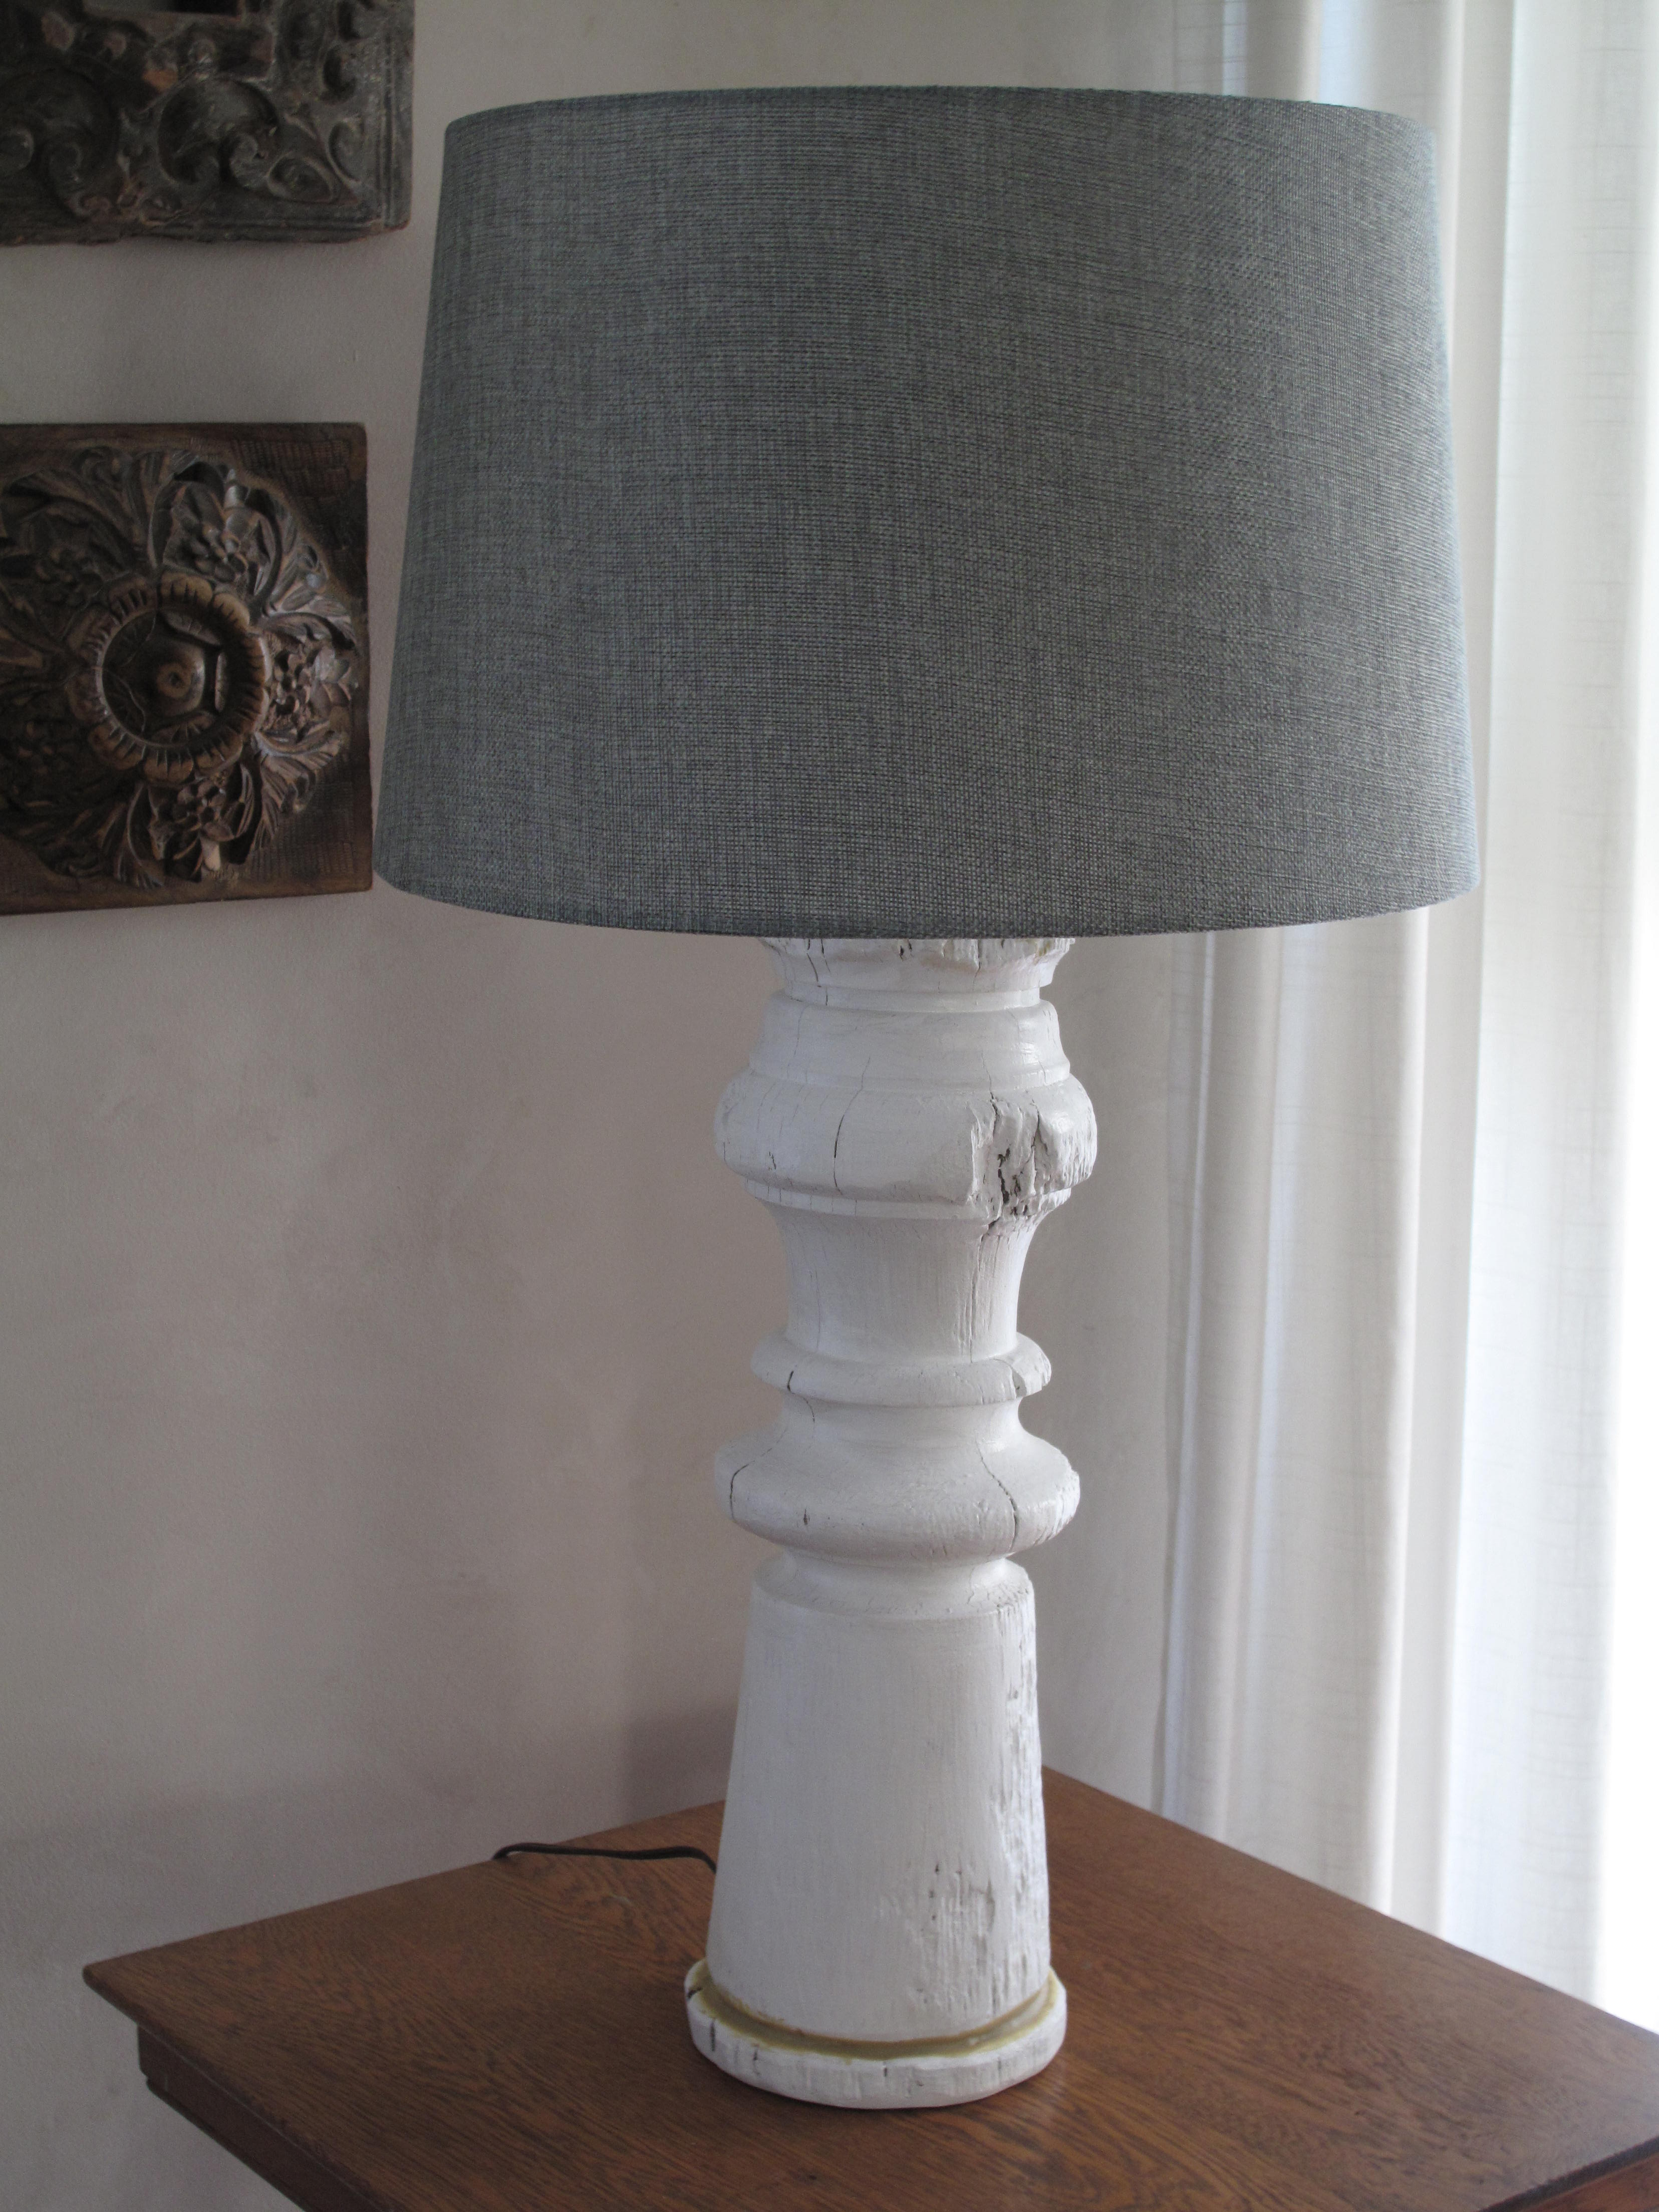 missionary incredible arts lamps pendant on and torch post for craftsman picture full lights antique outdoor size fans inspiration floor silver lamp arm mission style table swing layout the with prairie uncategorized modern tiffany mount of wall lighting stained ottlite files retro